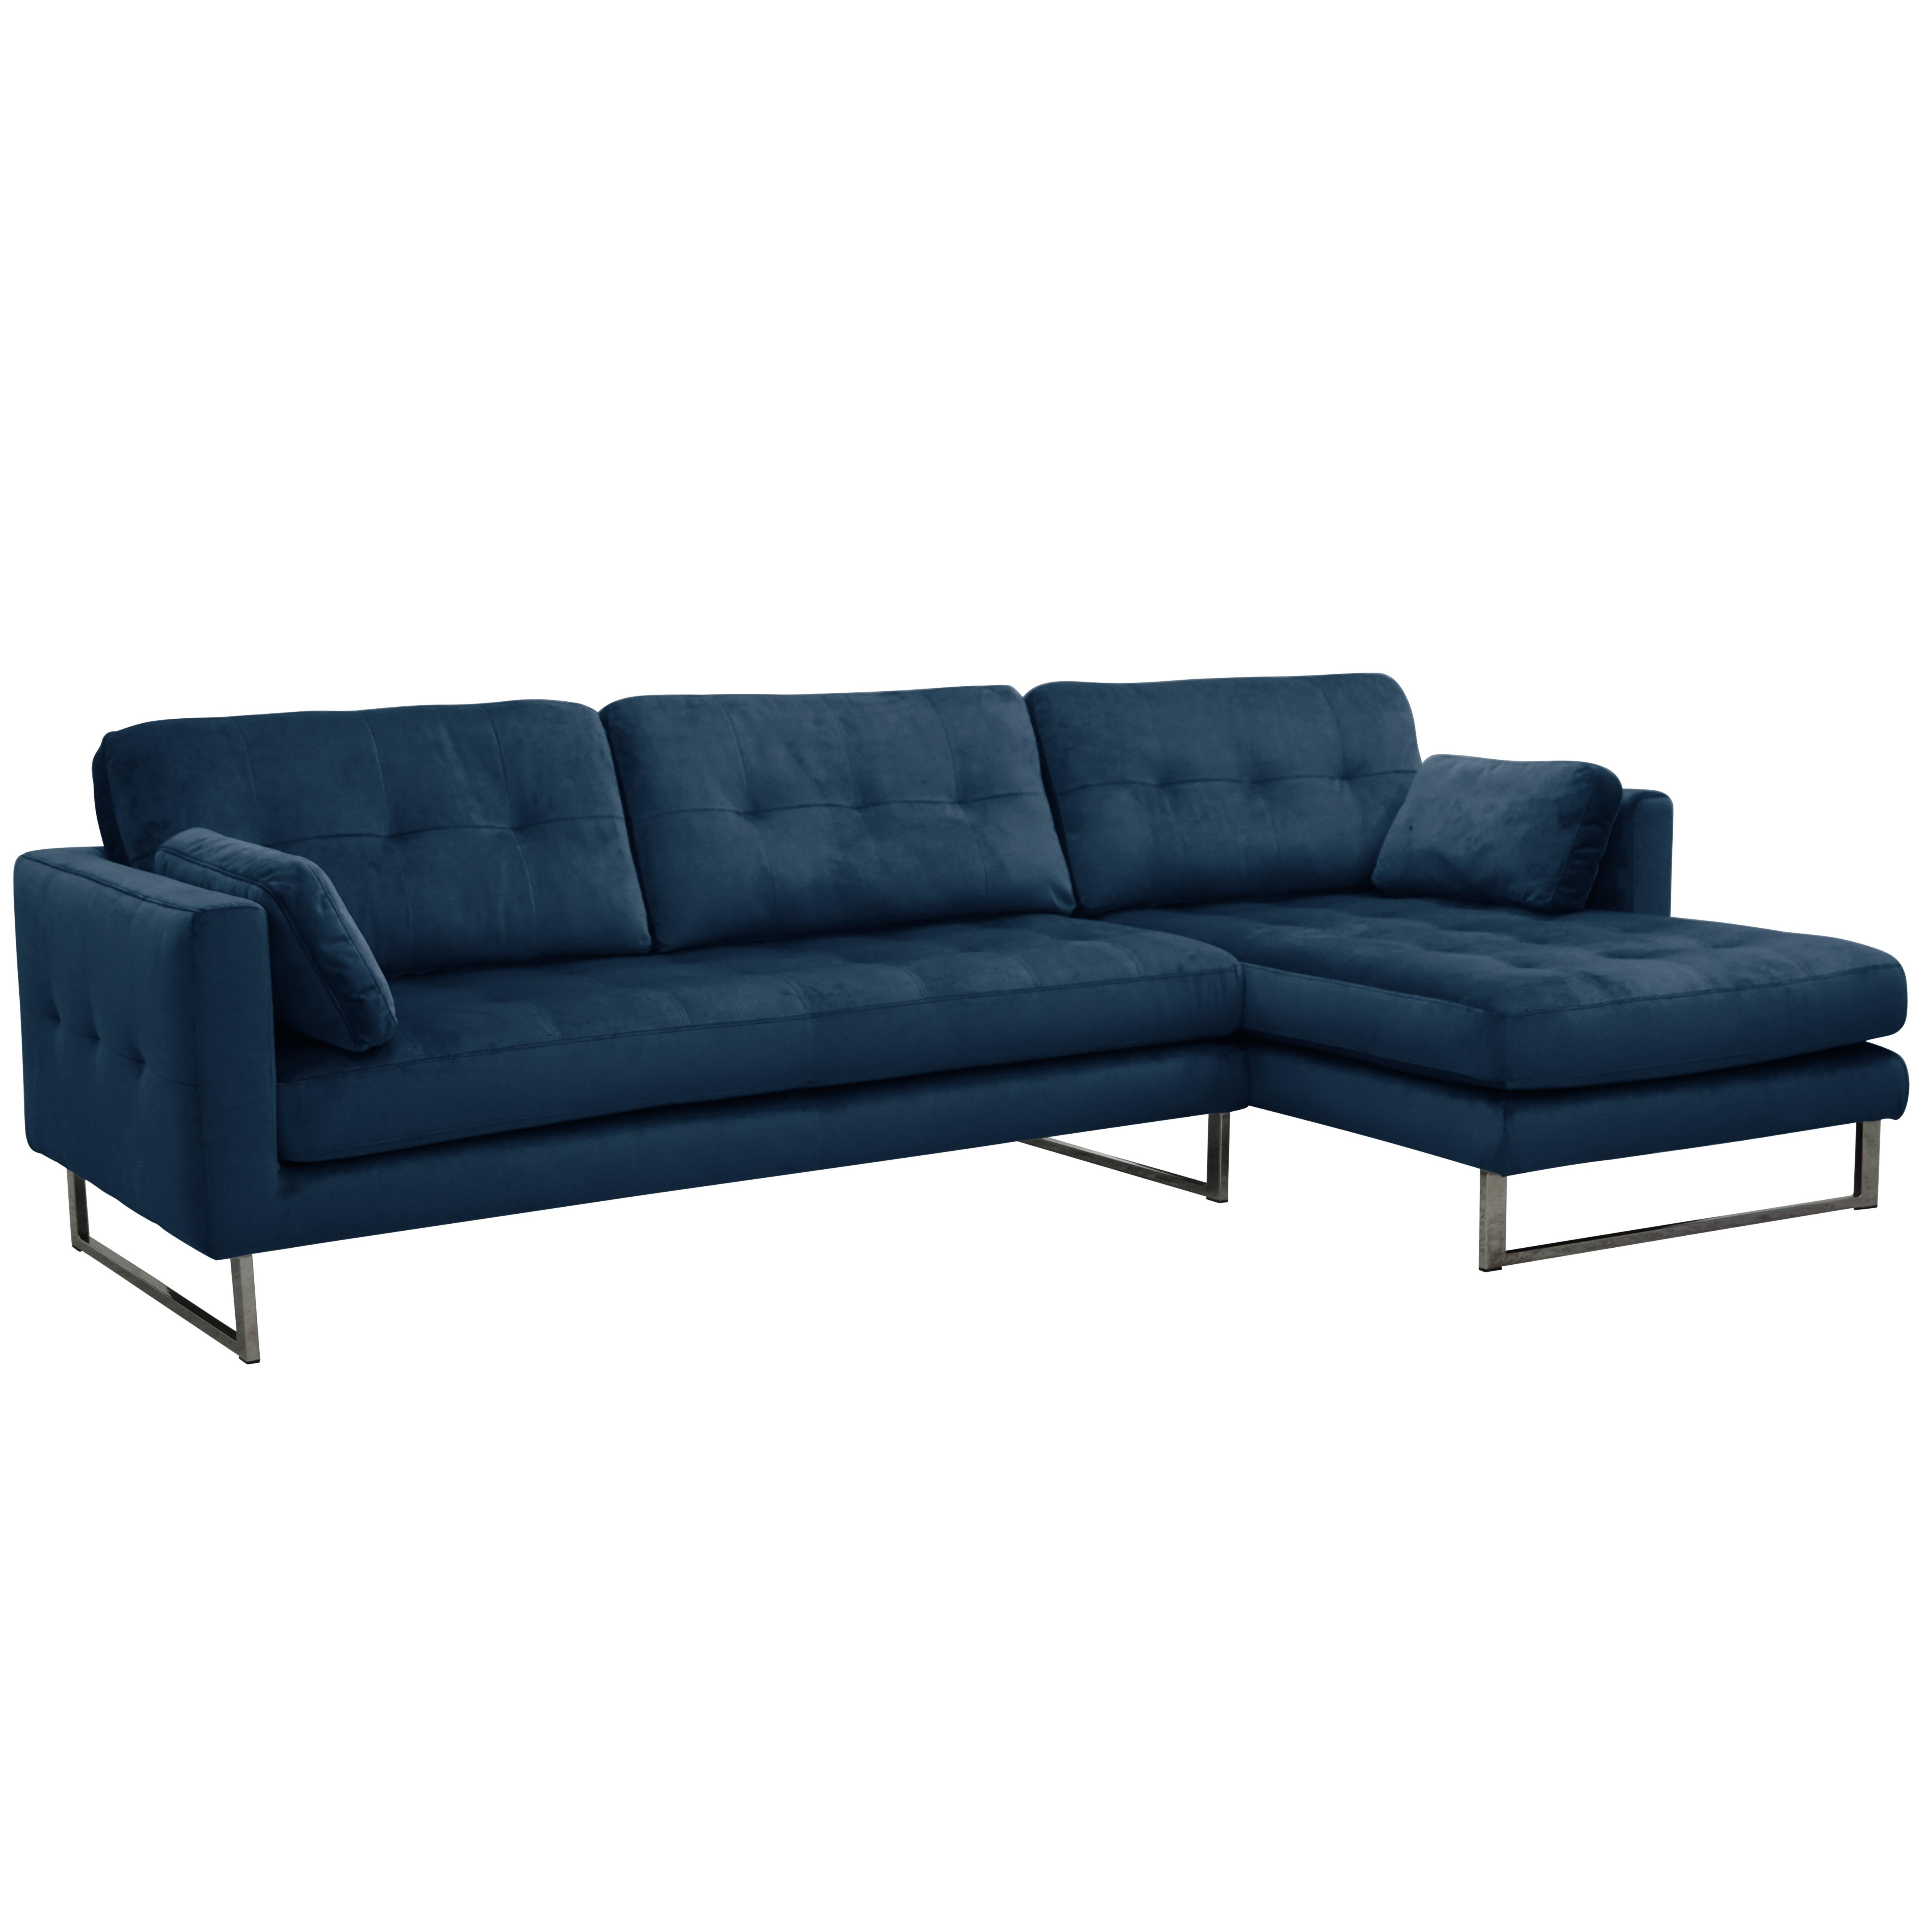 Paris II right hand facing four seater chaise sofa alba velvet blue